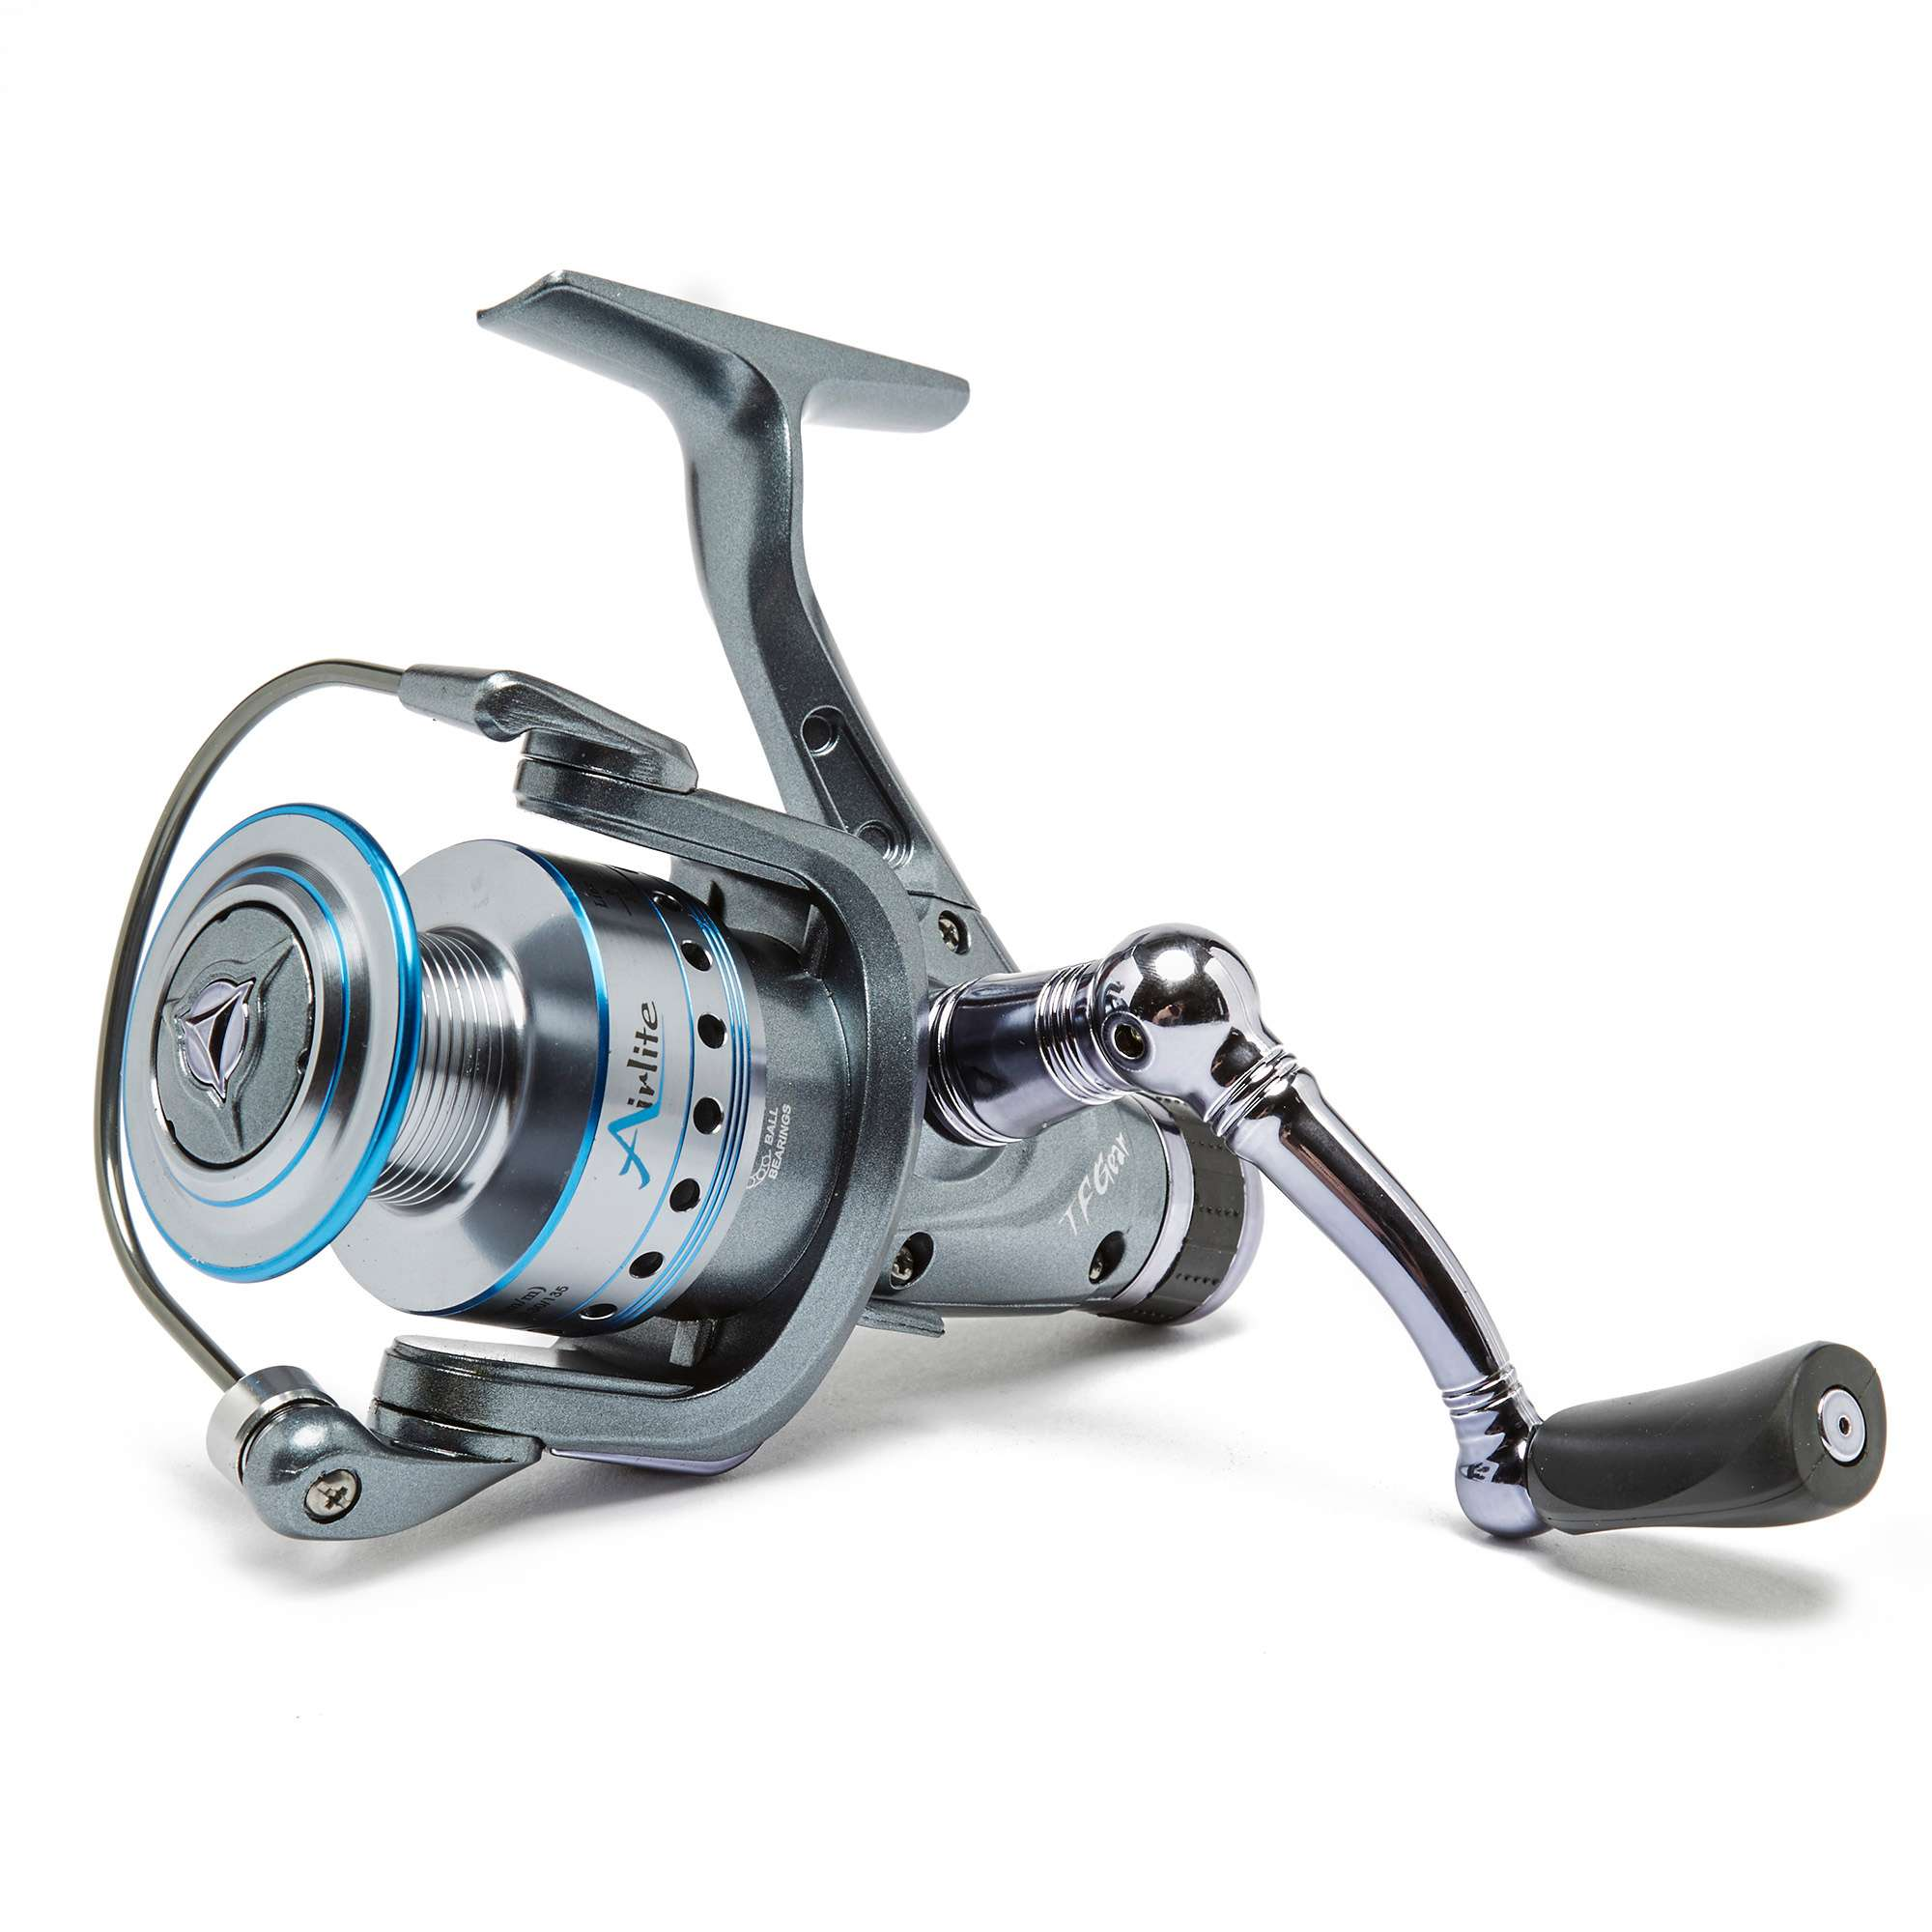 TFG Airlite Match Feeder Reel